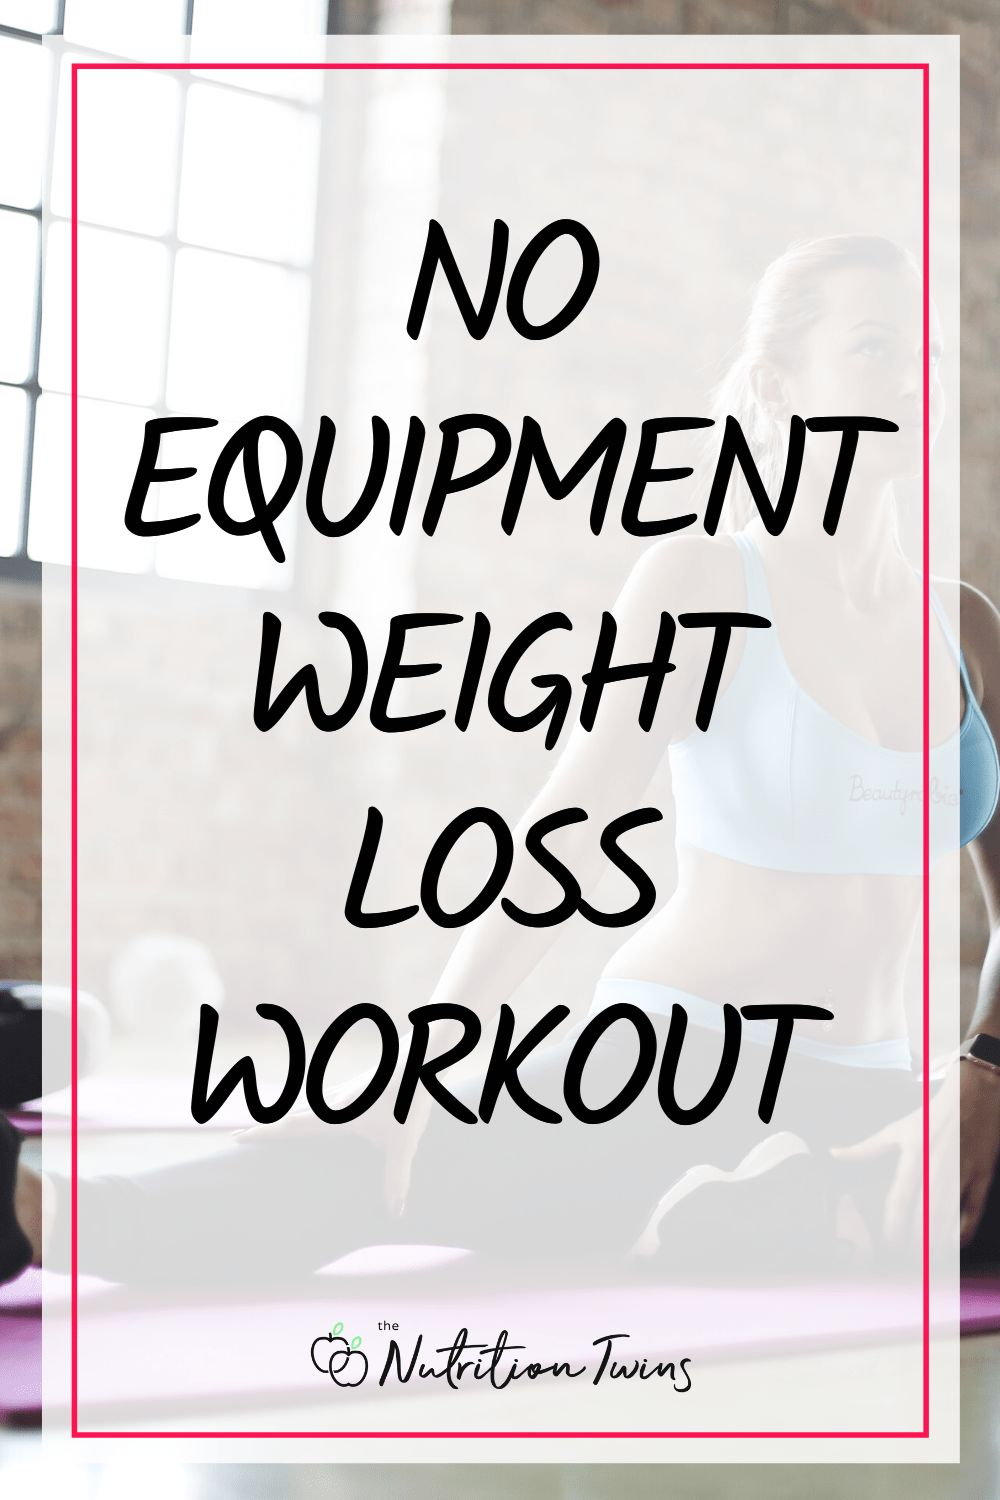 No Equipment Workout for Weight Loss Plans. You can do this strength training at home or outside to get strong and fit and help you with your flat belly weight loss plan. #cardio #strenghtraining #workout For MORE RECIPES, fitness & nutrition tips please SIGN UP for our FREE NEWSLETTER www.NutritionTwins.com